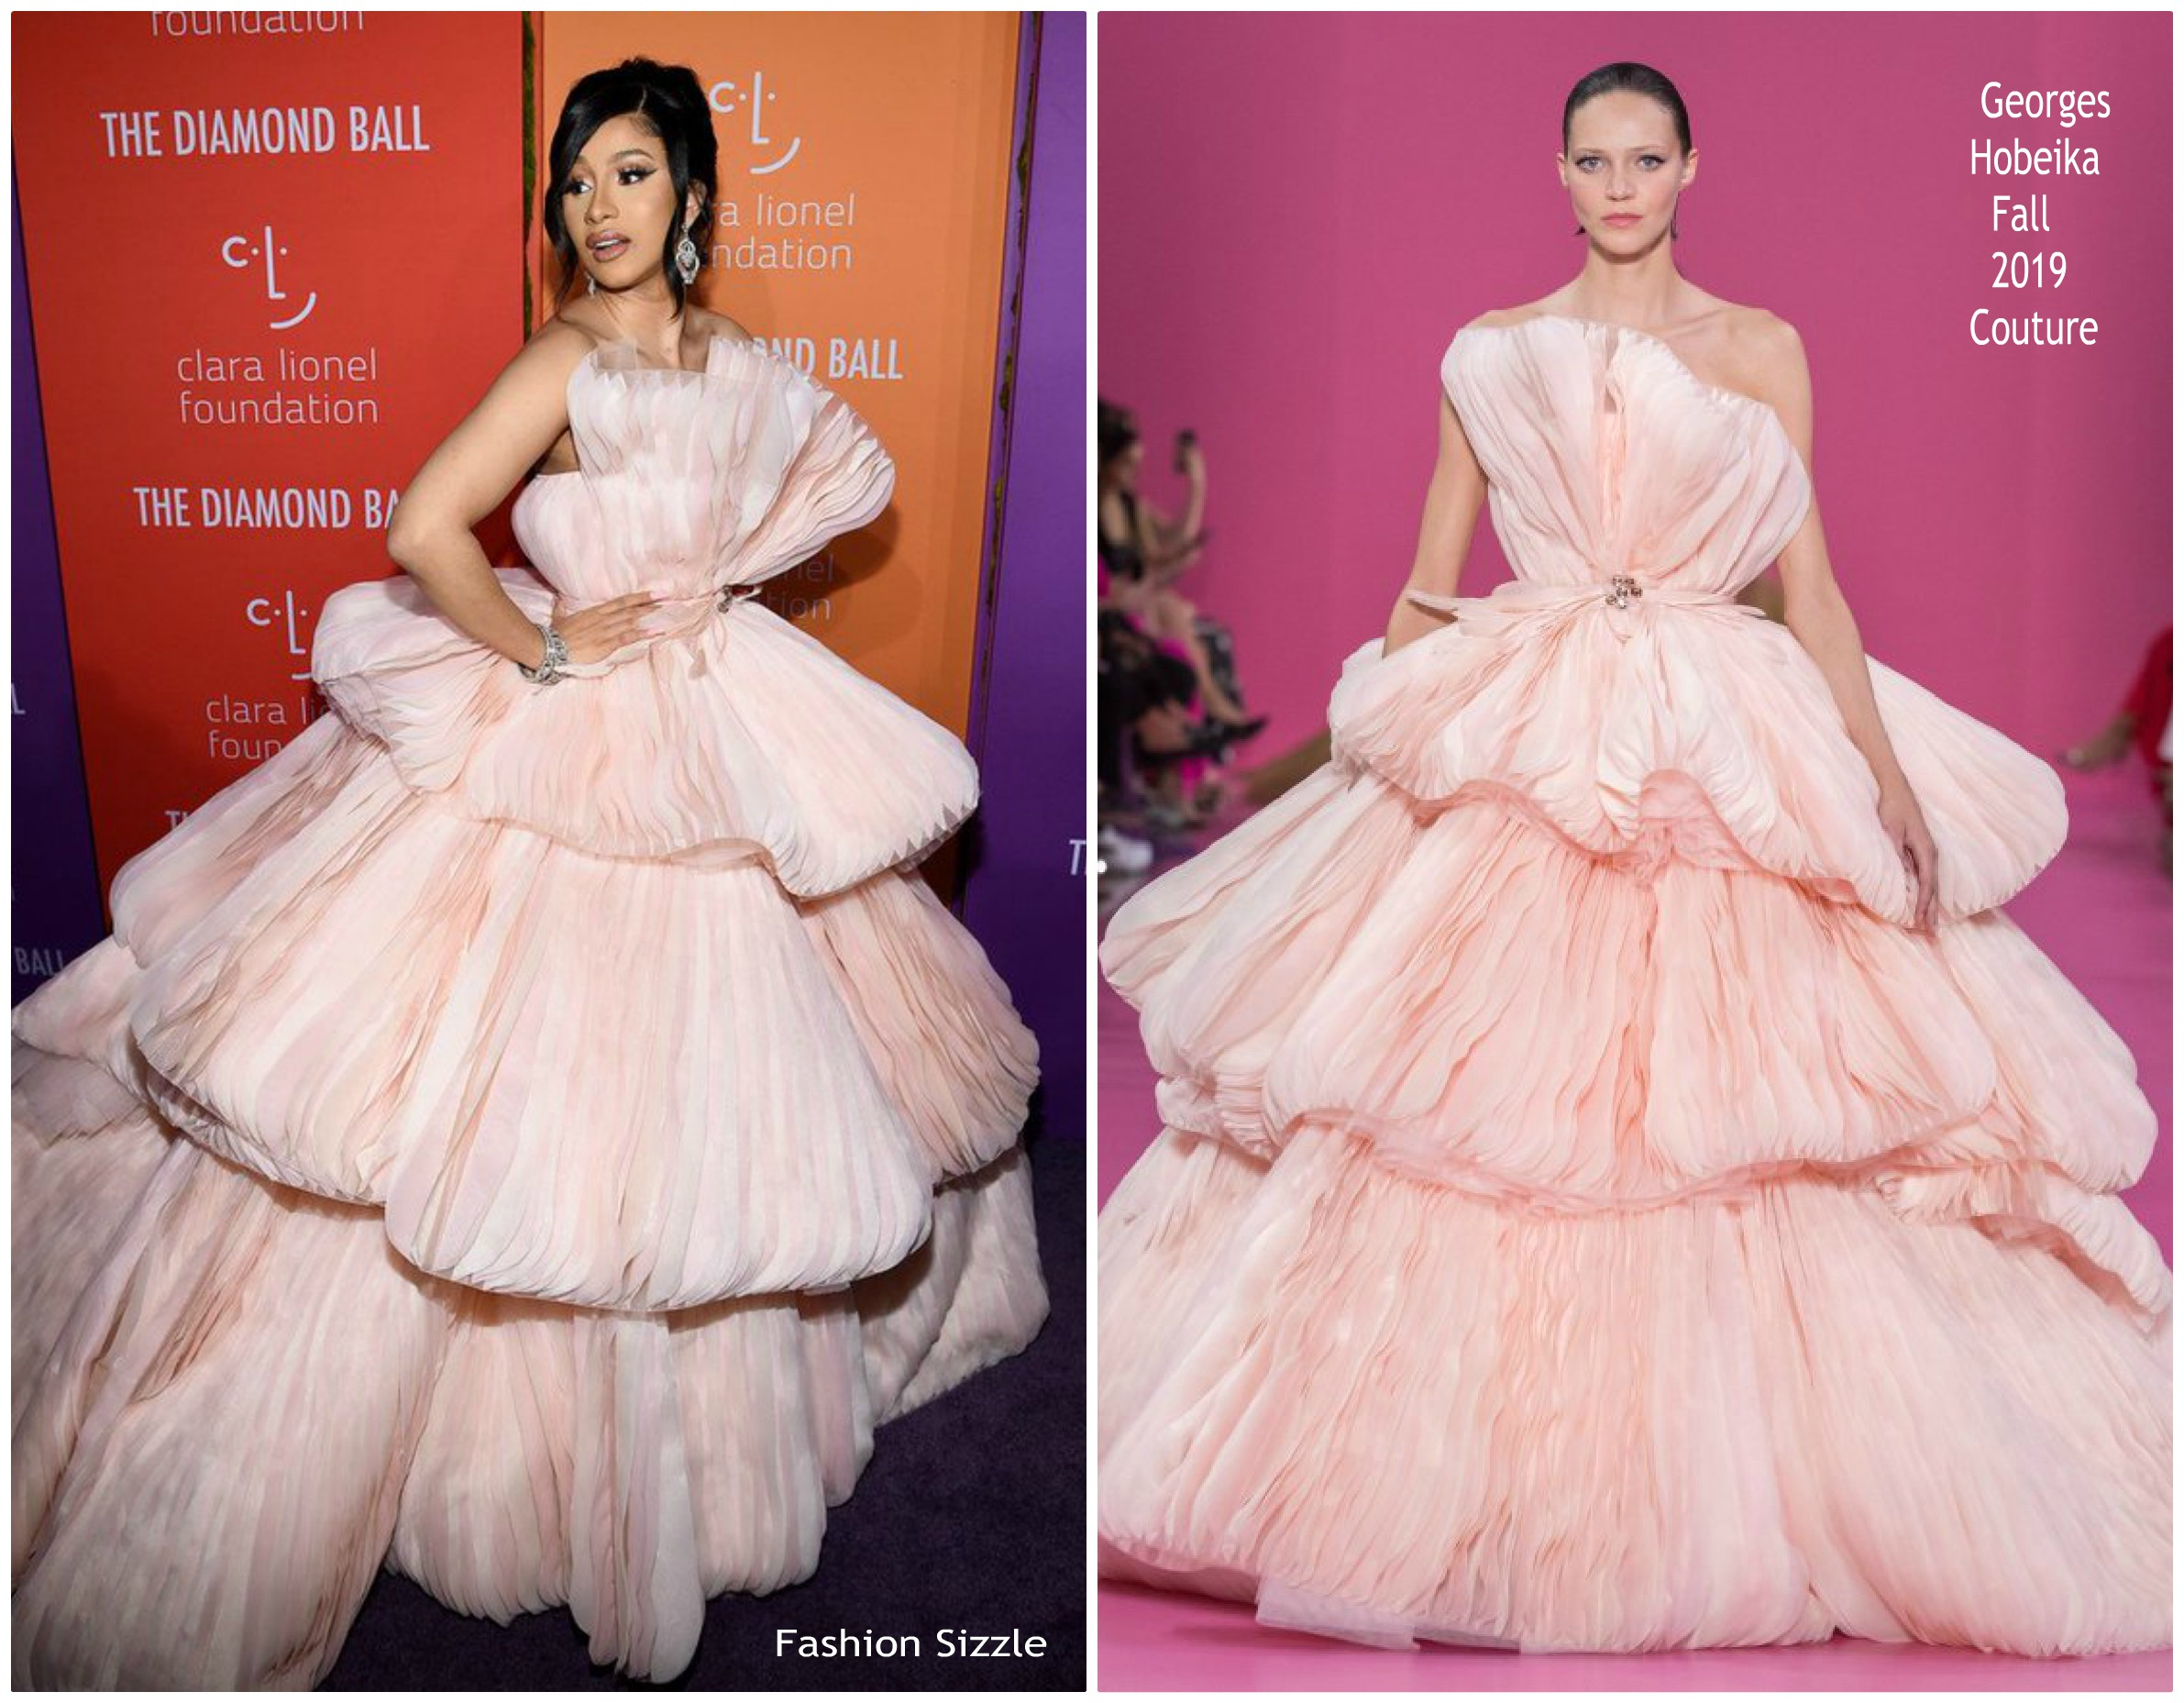 cardi-b-in-georges-hobeika-couture-2019-diamond-ball